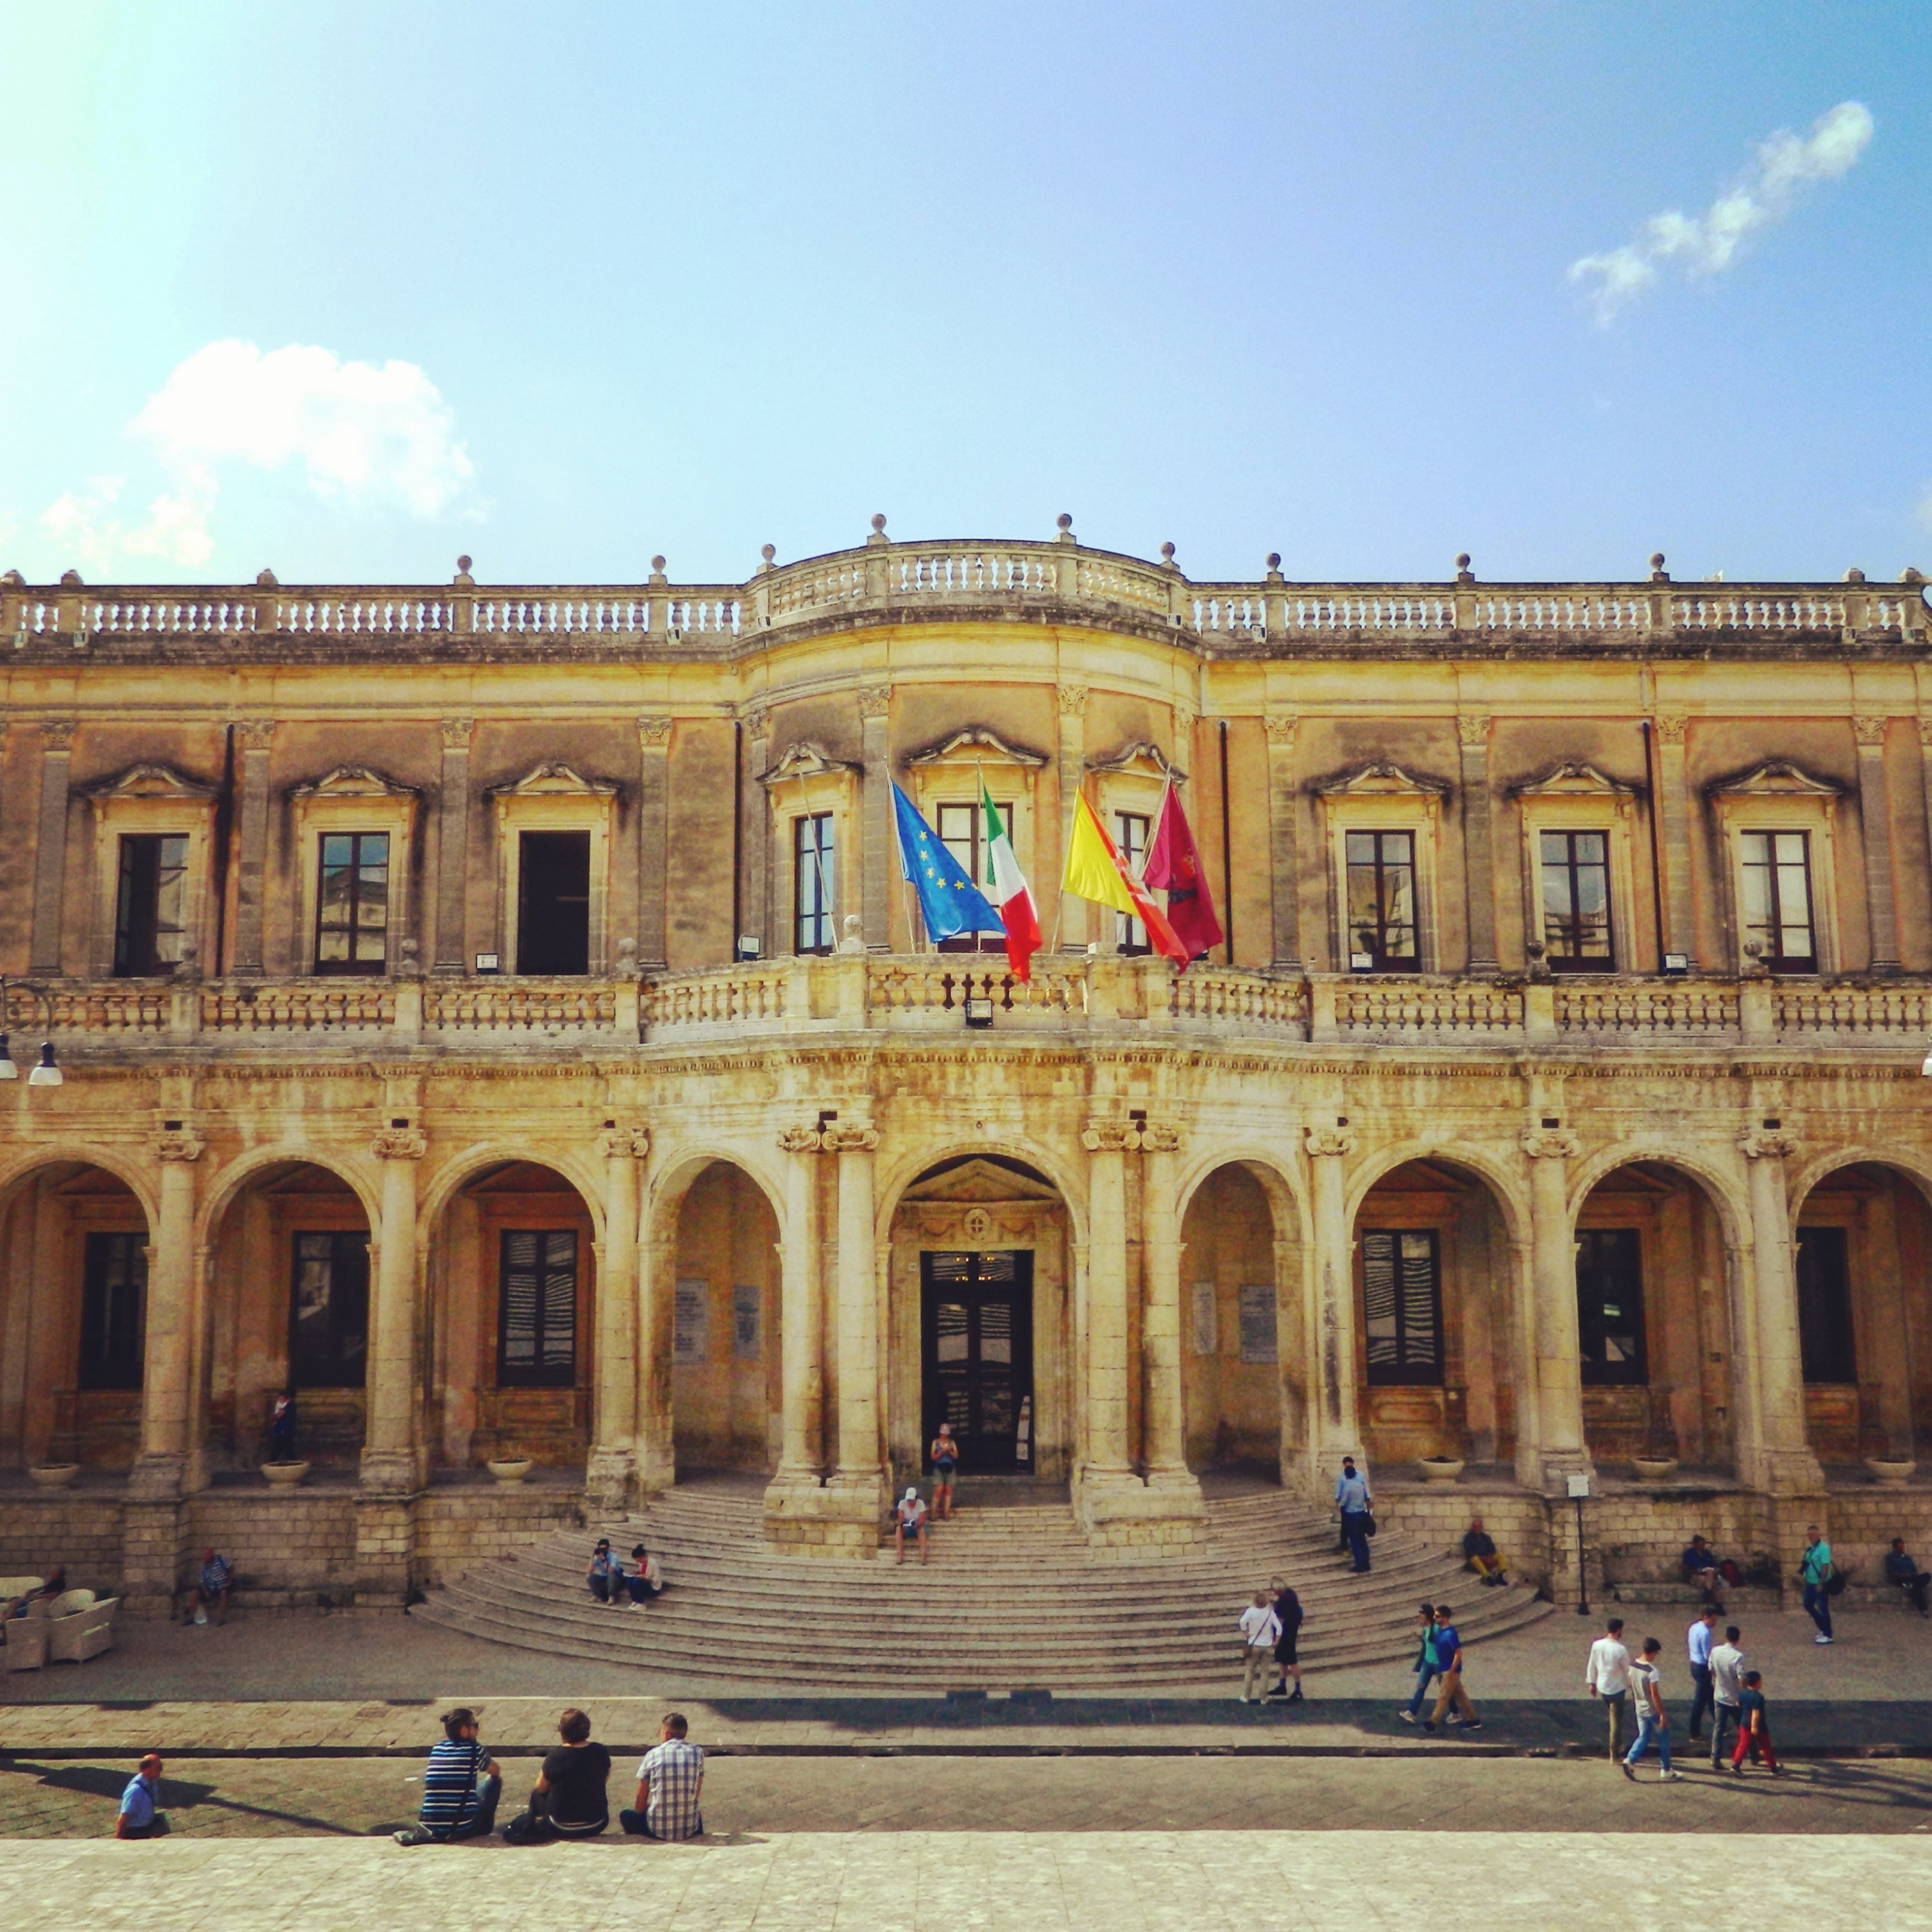 52 Reasons to Love Sicily   #41. European Grandeur and Stateliness